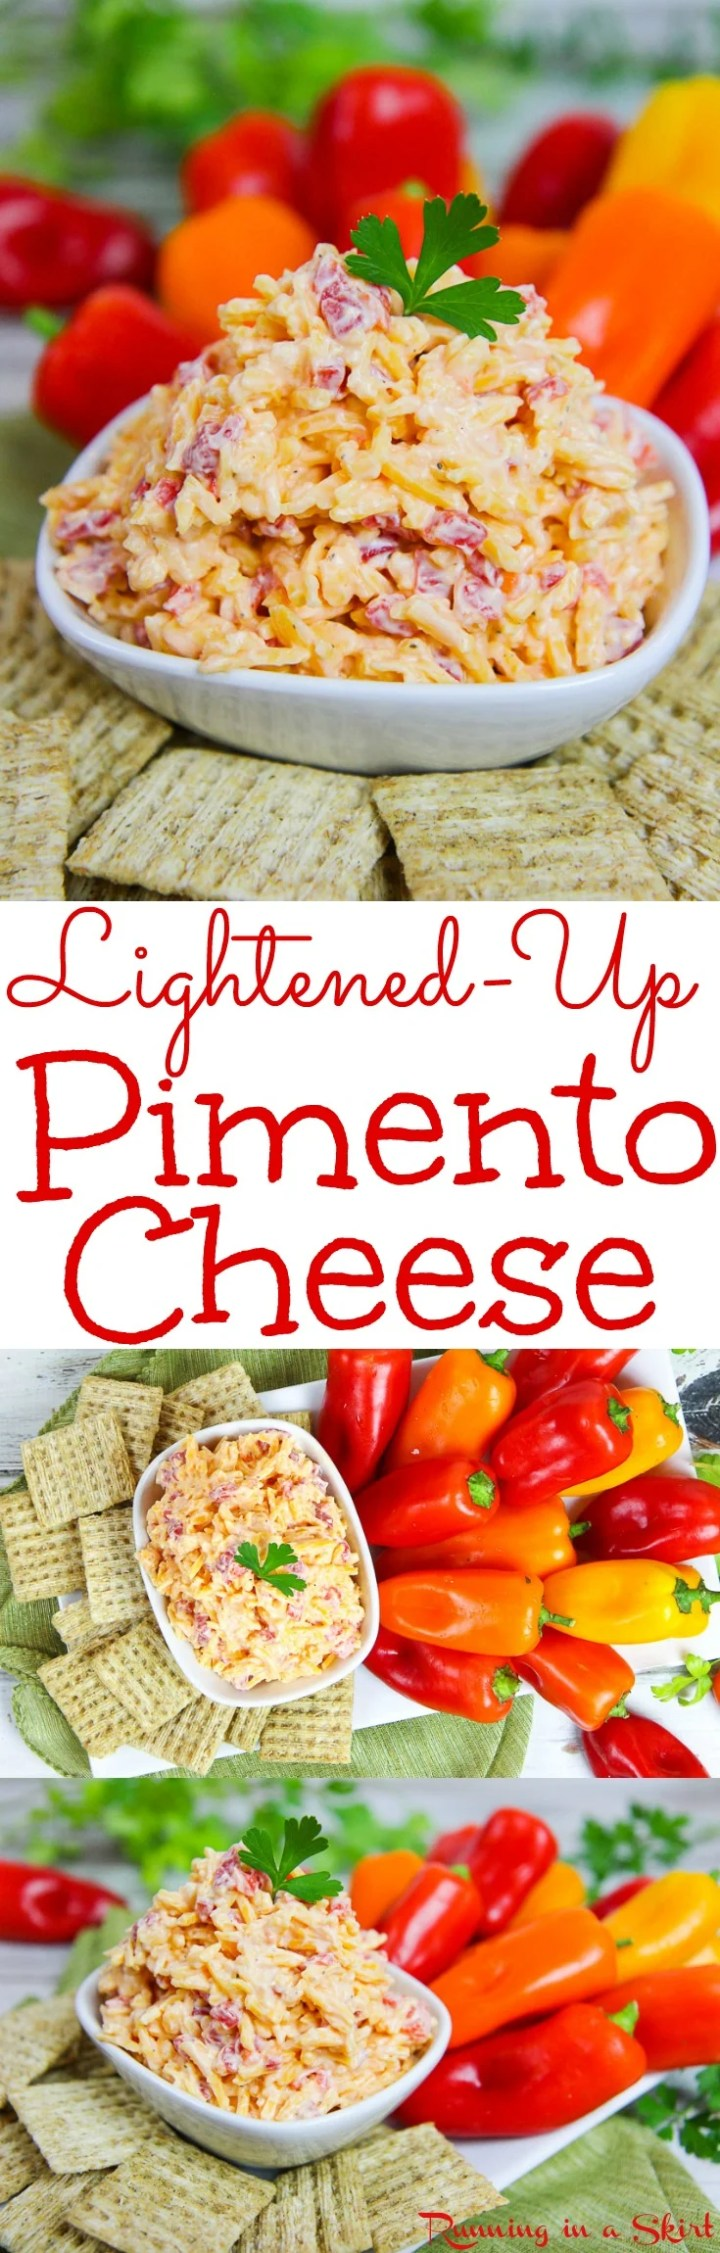 The Best Lightened-Up Homemade Southern Pimento Cheese recipe. A healthier, easy version of this spread or dip. Serve in a sandwich, on crackers or at a party! Uses greek yogurt and includes a no mayo version. / Running in a Skirt via @juliewunder